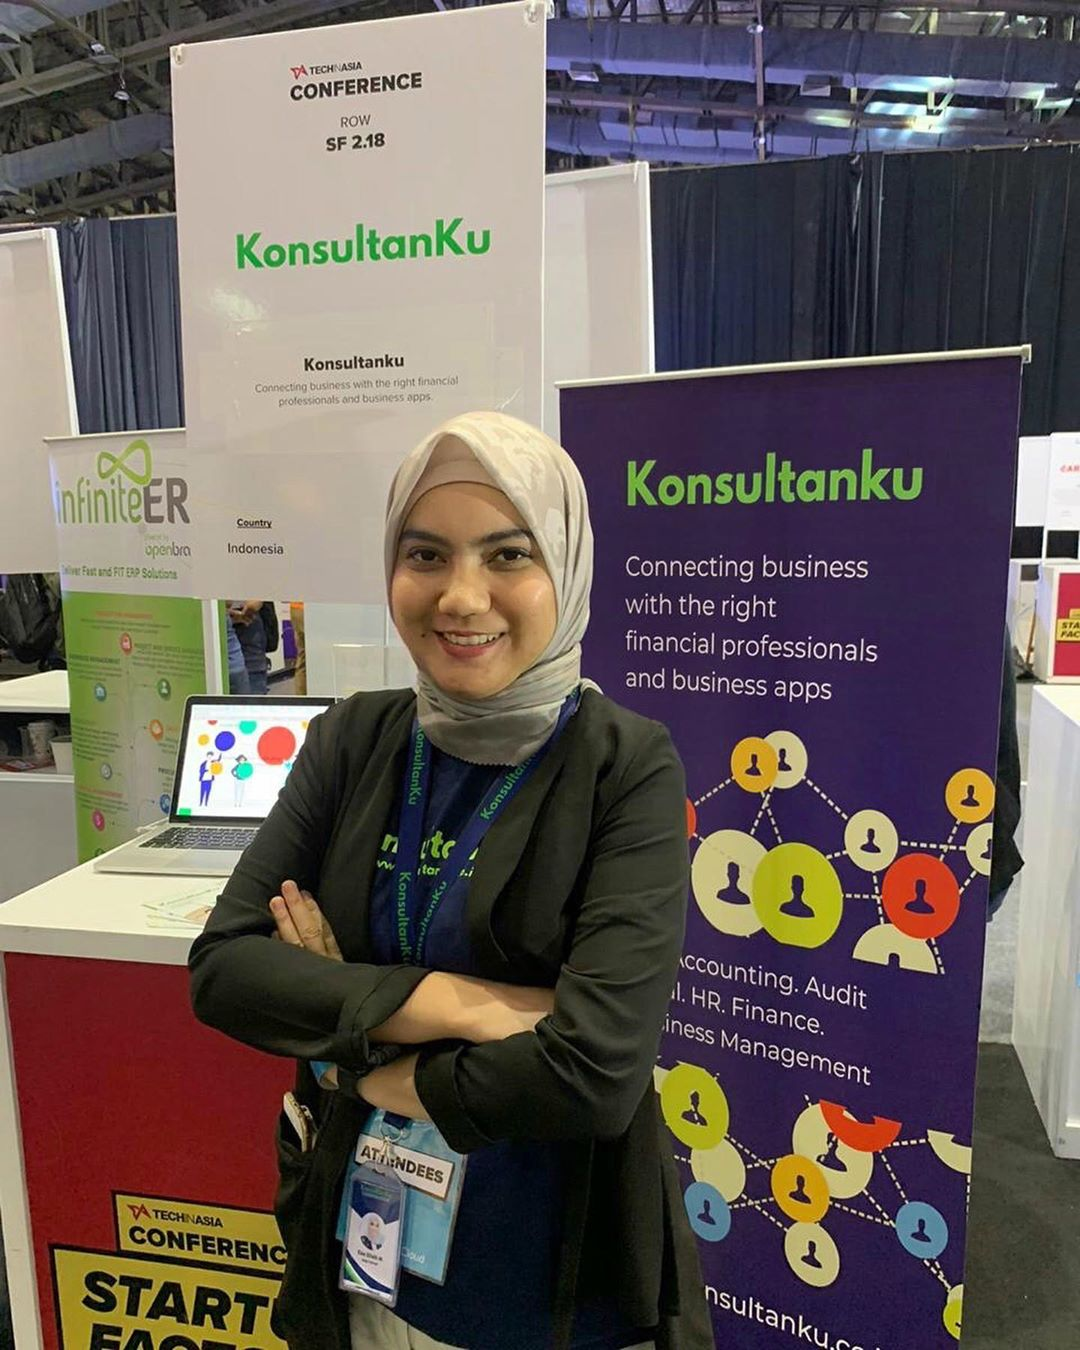 Startup Konsultanku Is Optimistic to Push Tax Revenue